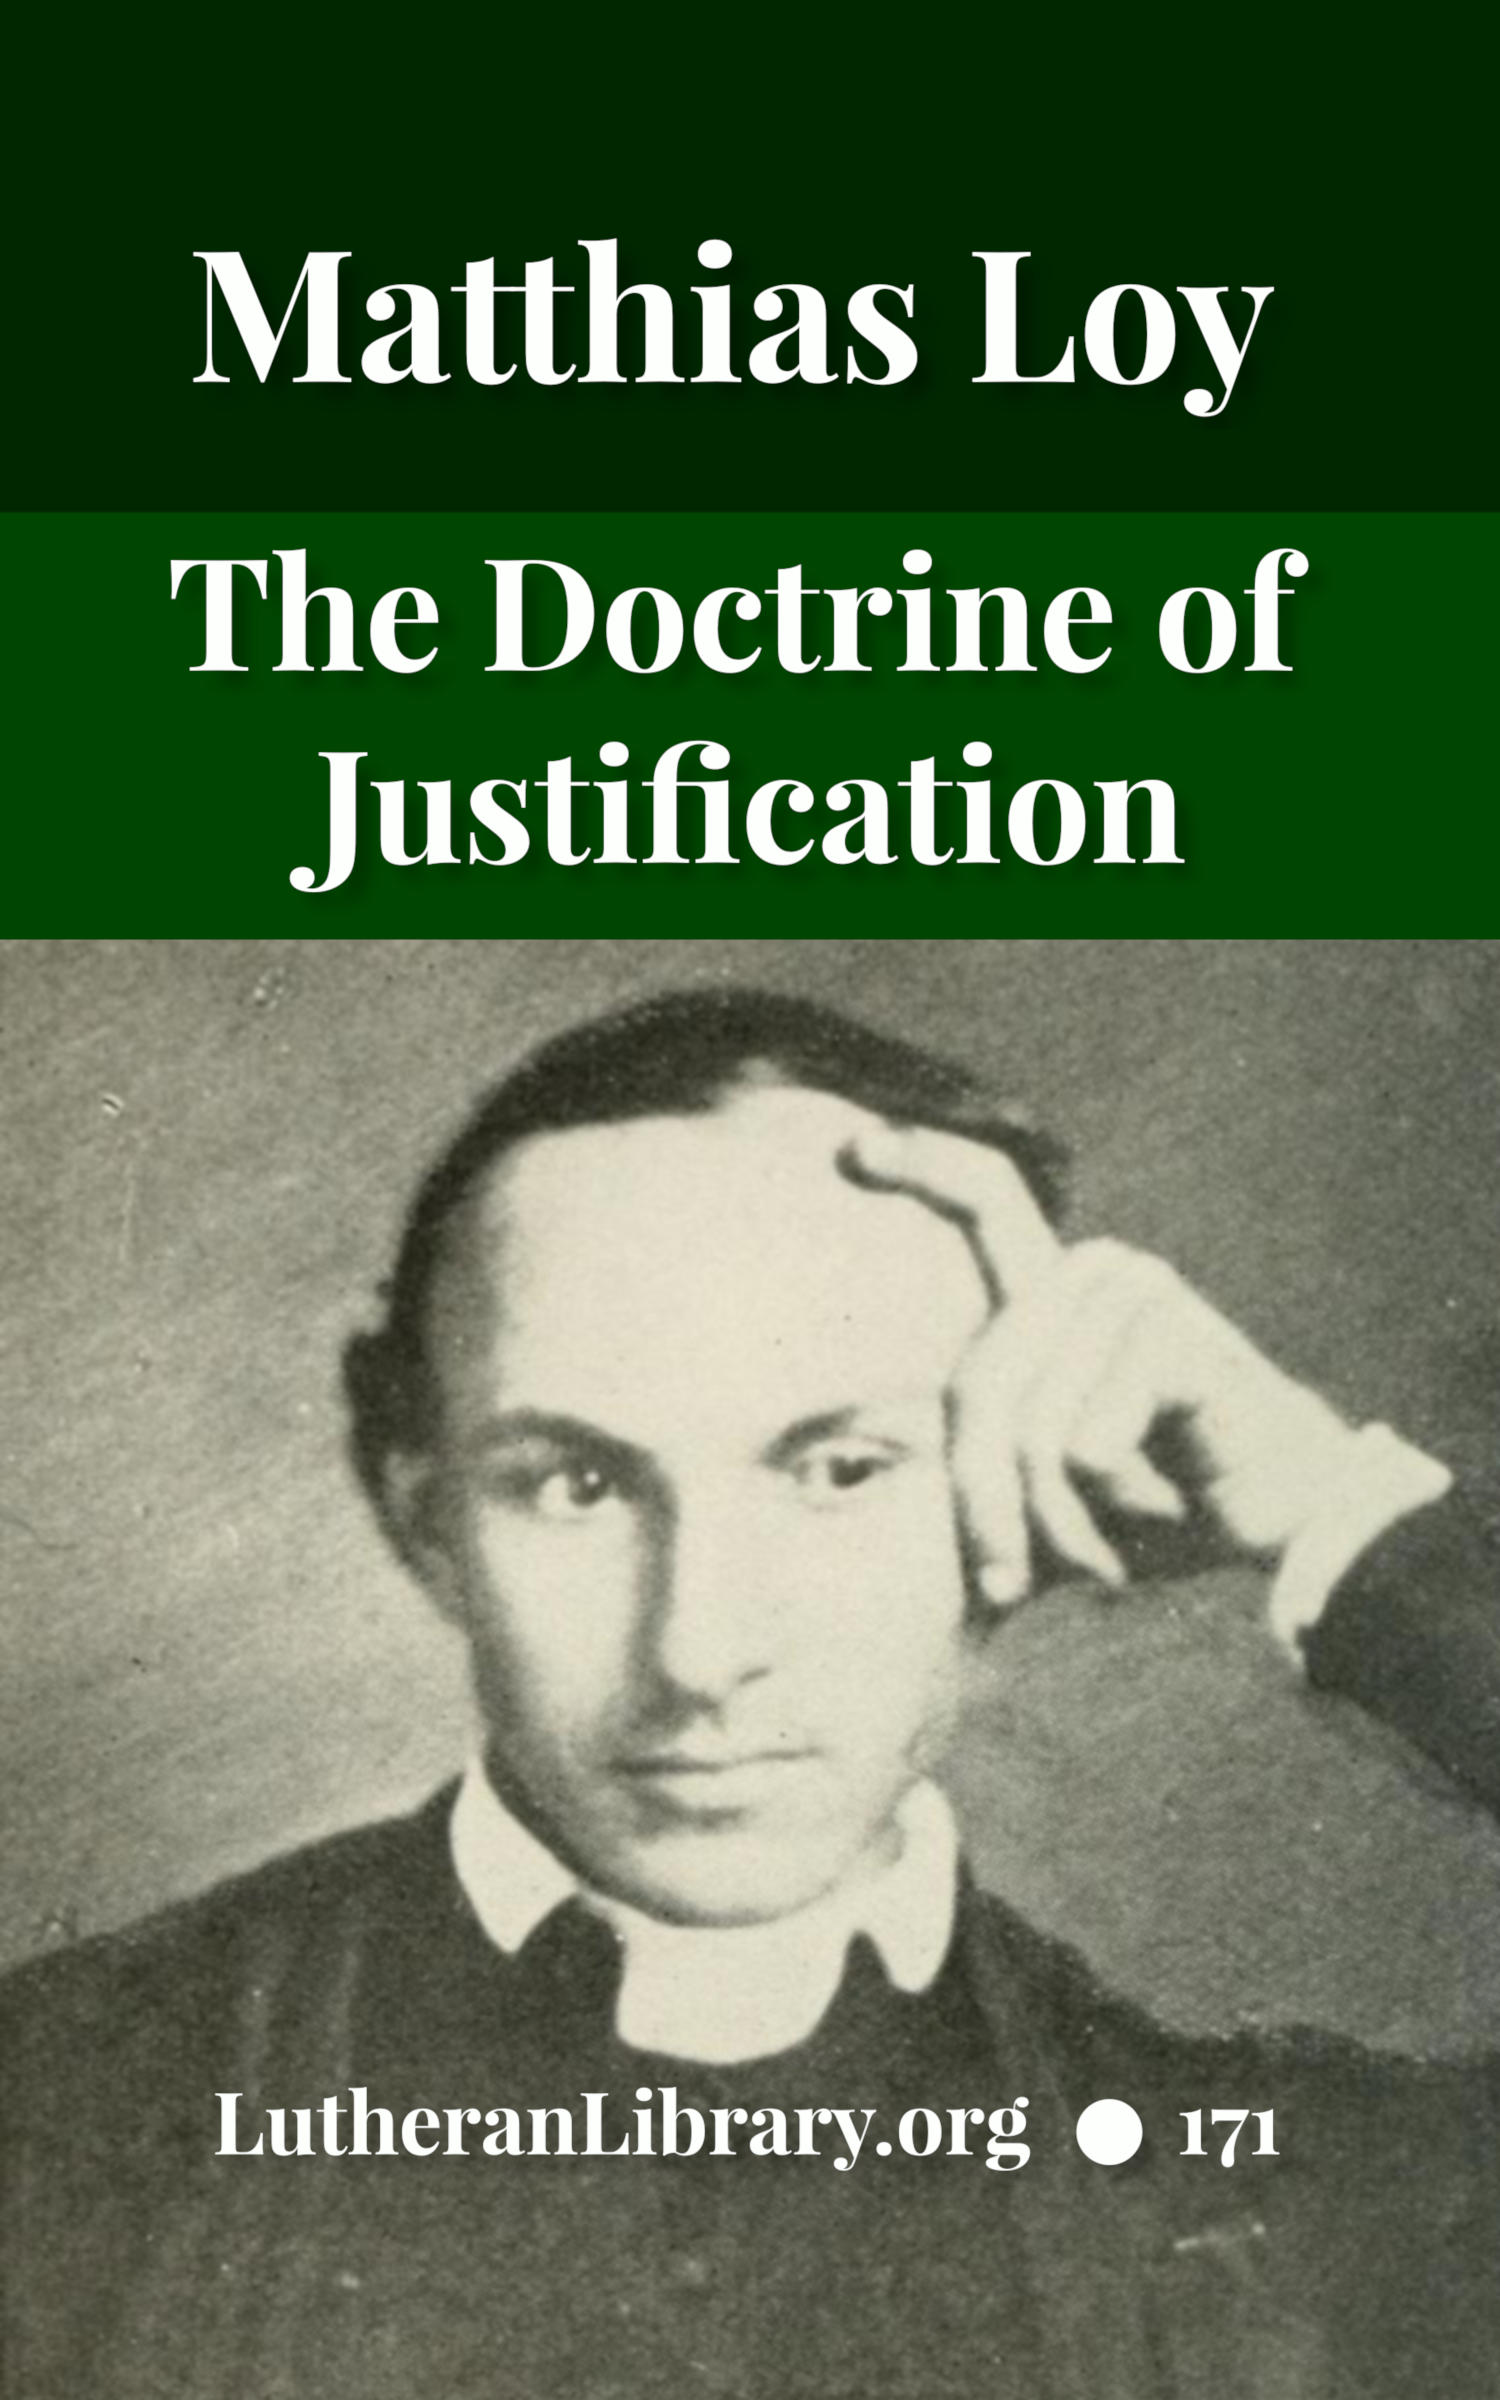 Doctrine of Justification by Matthias Loy